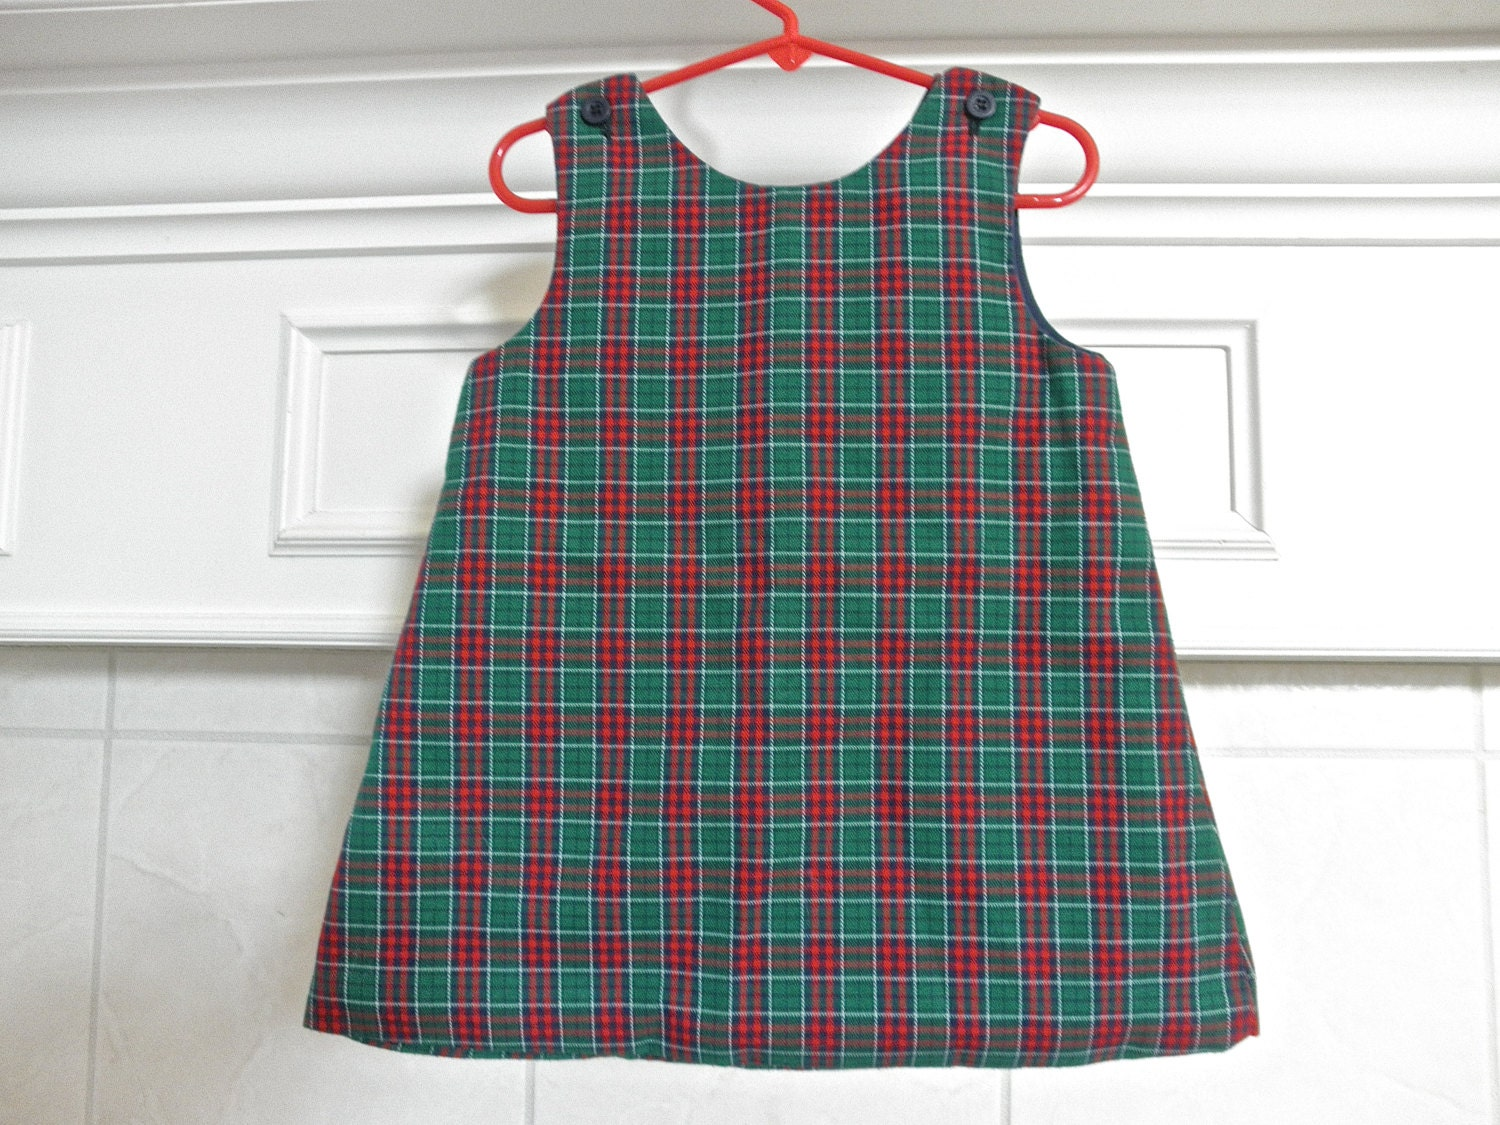 Shop Girls Clothing at Smocked Auctions. Buy classic smocked and monogrammed children's clothing online for newborns, babies, toddlers, and kids.